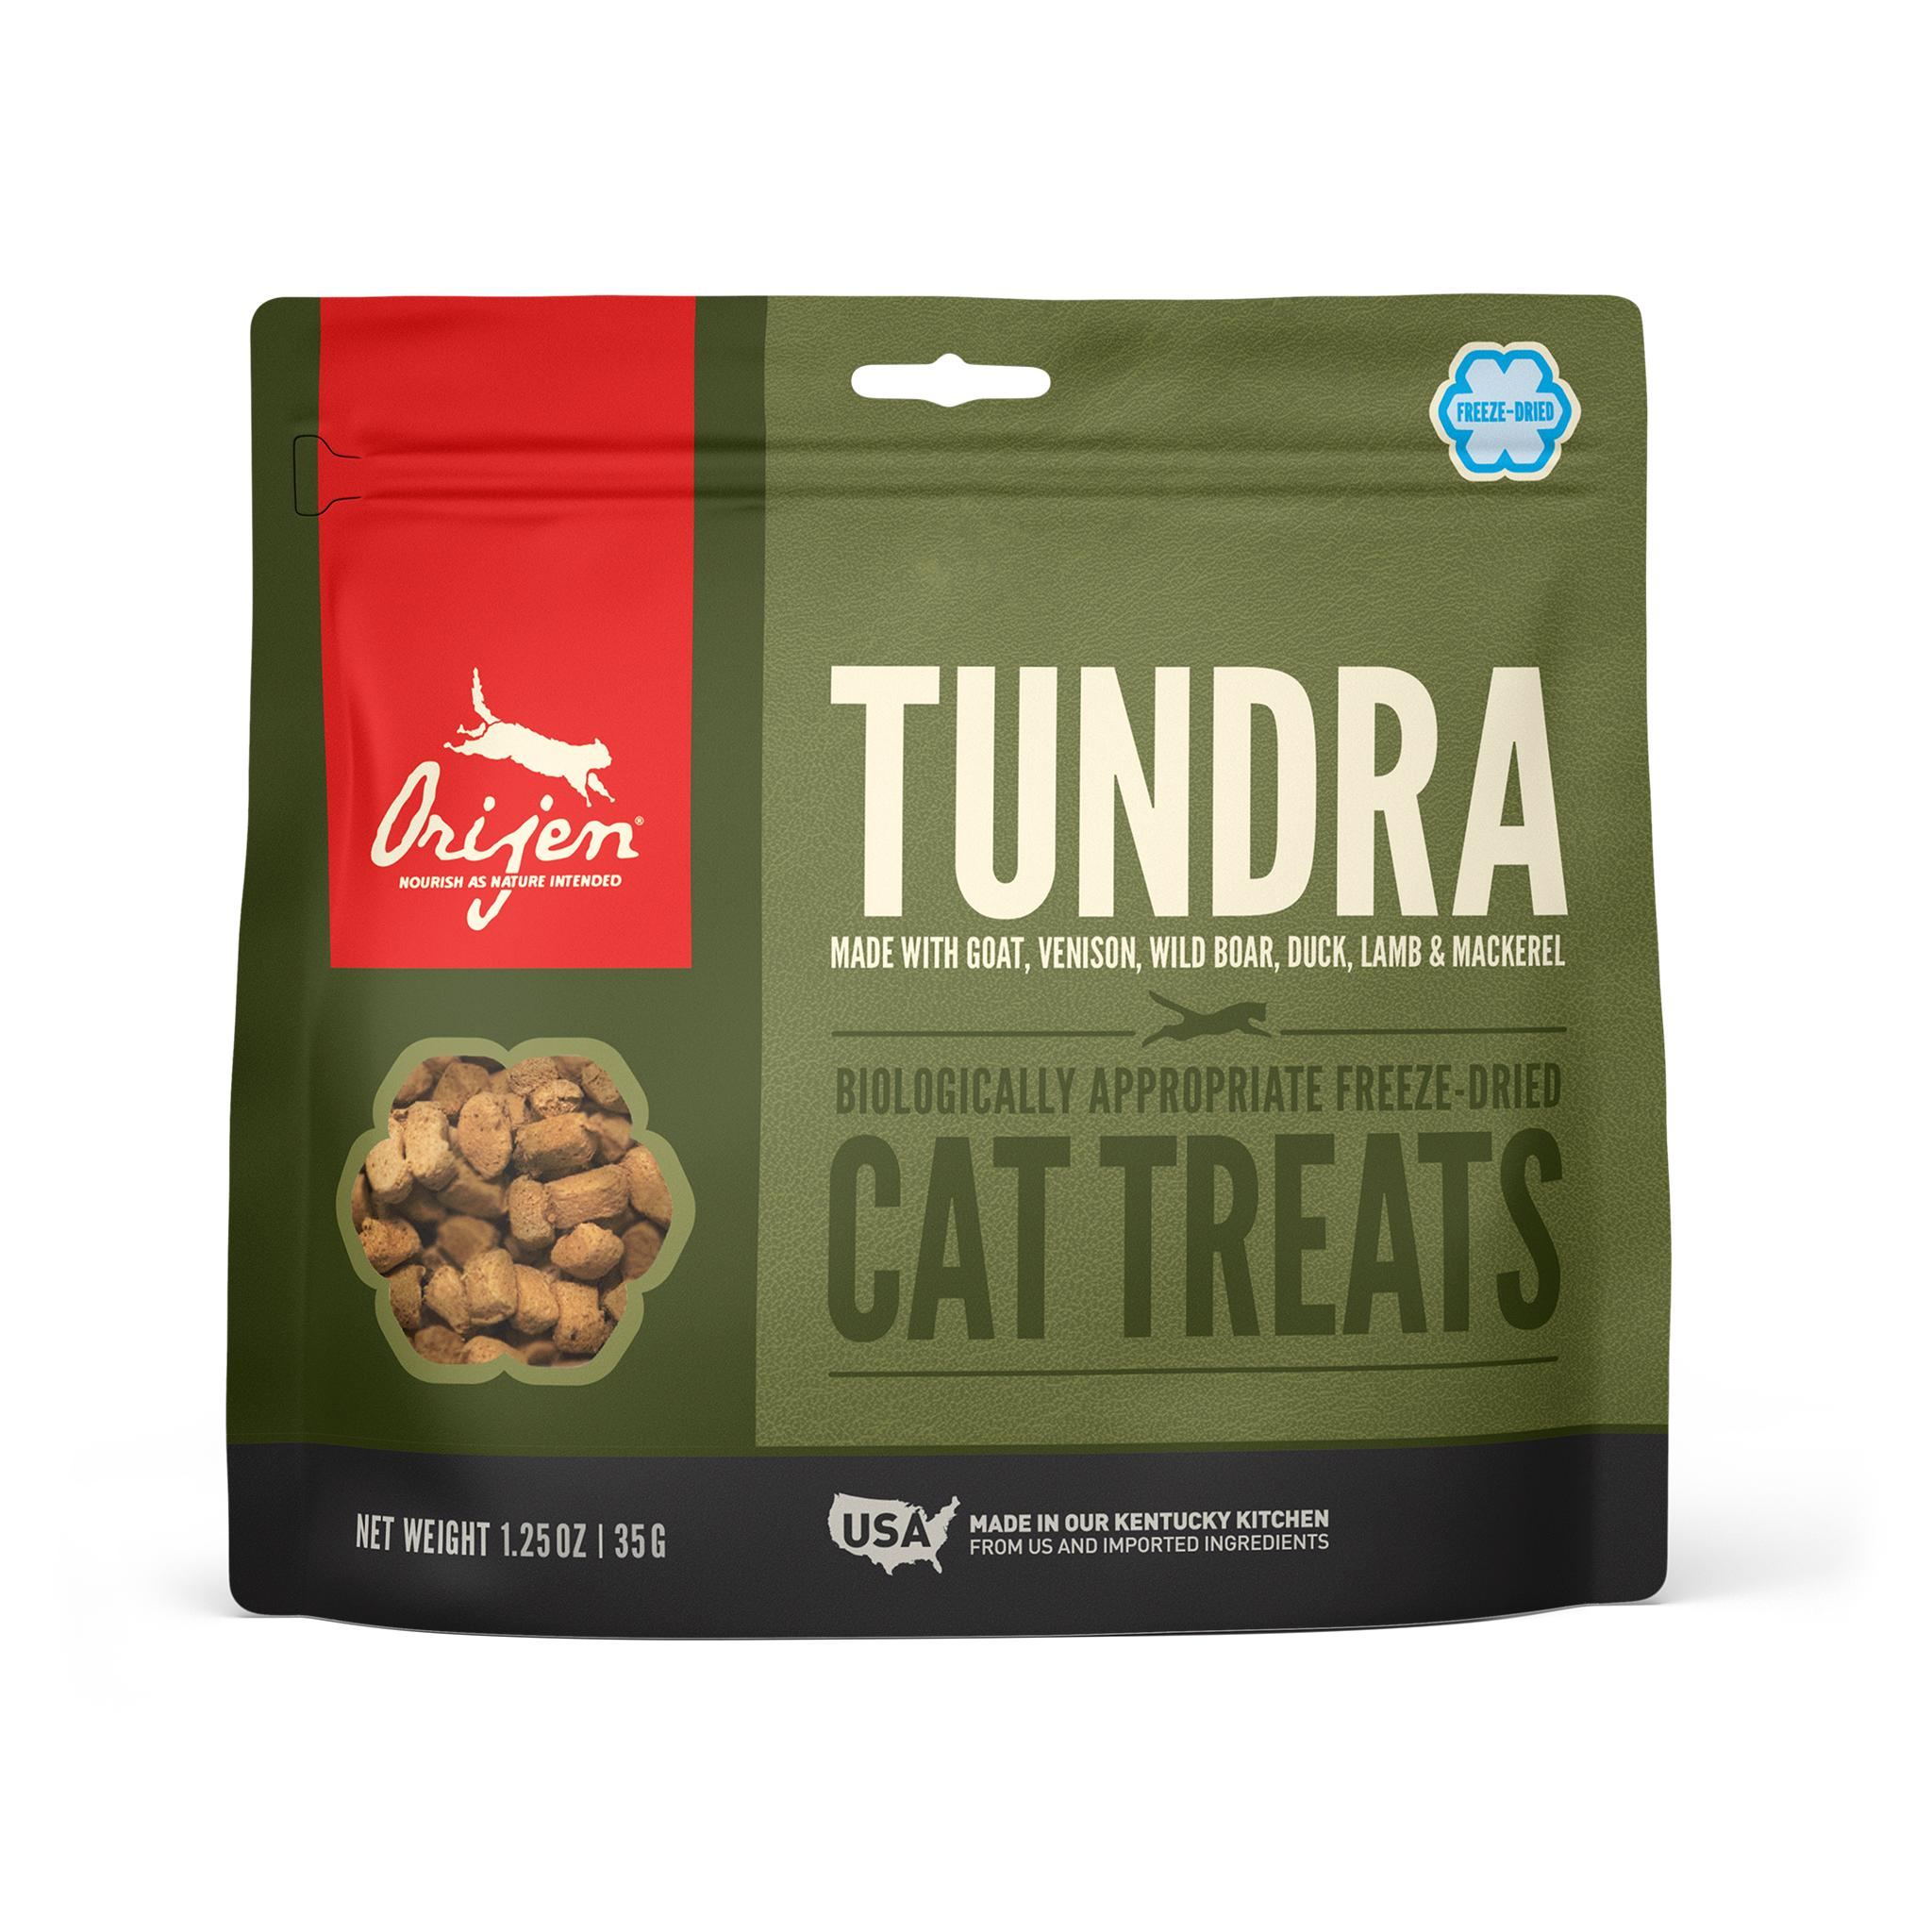 ORIJEN Tundra Grain-Free Freeze-Dried Cat Treats, 1.25-oz